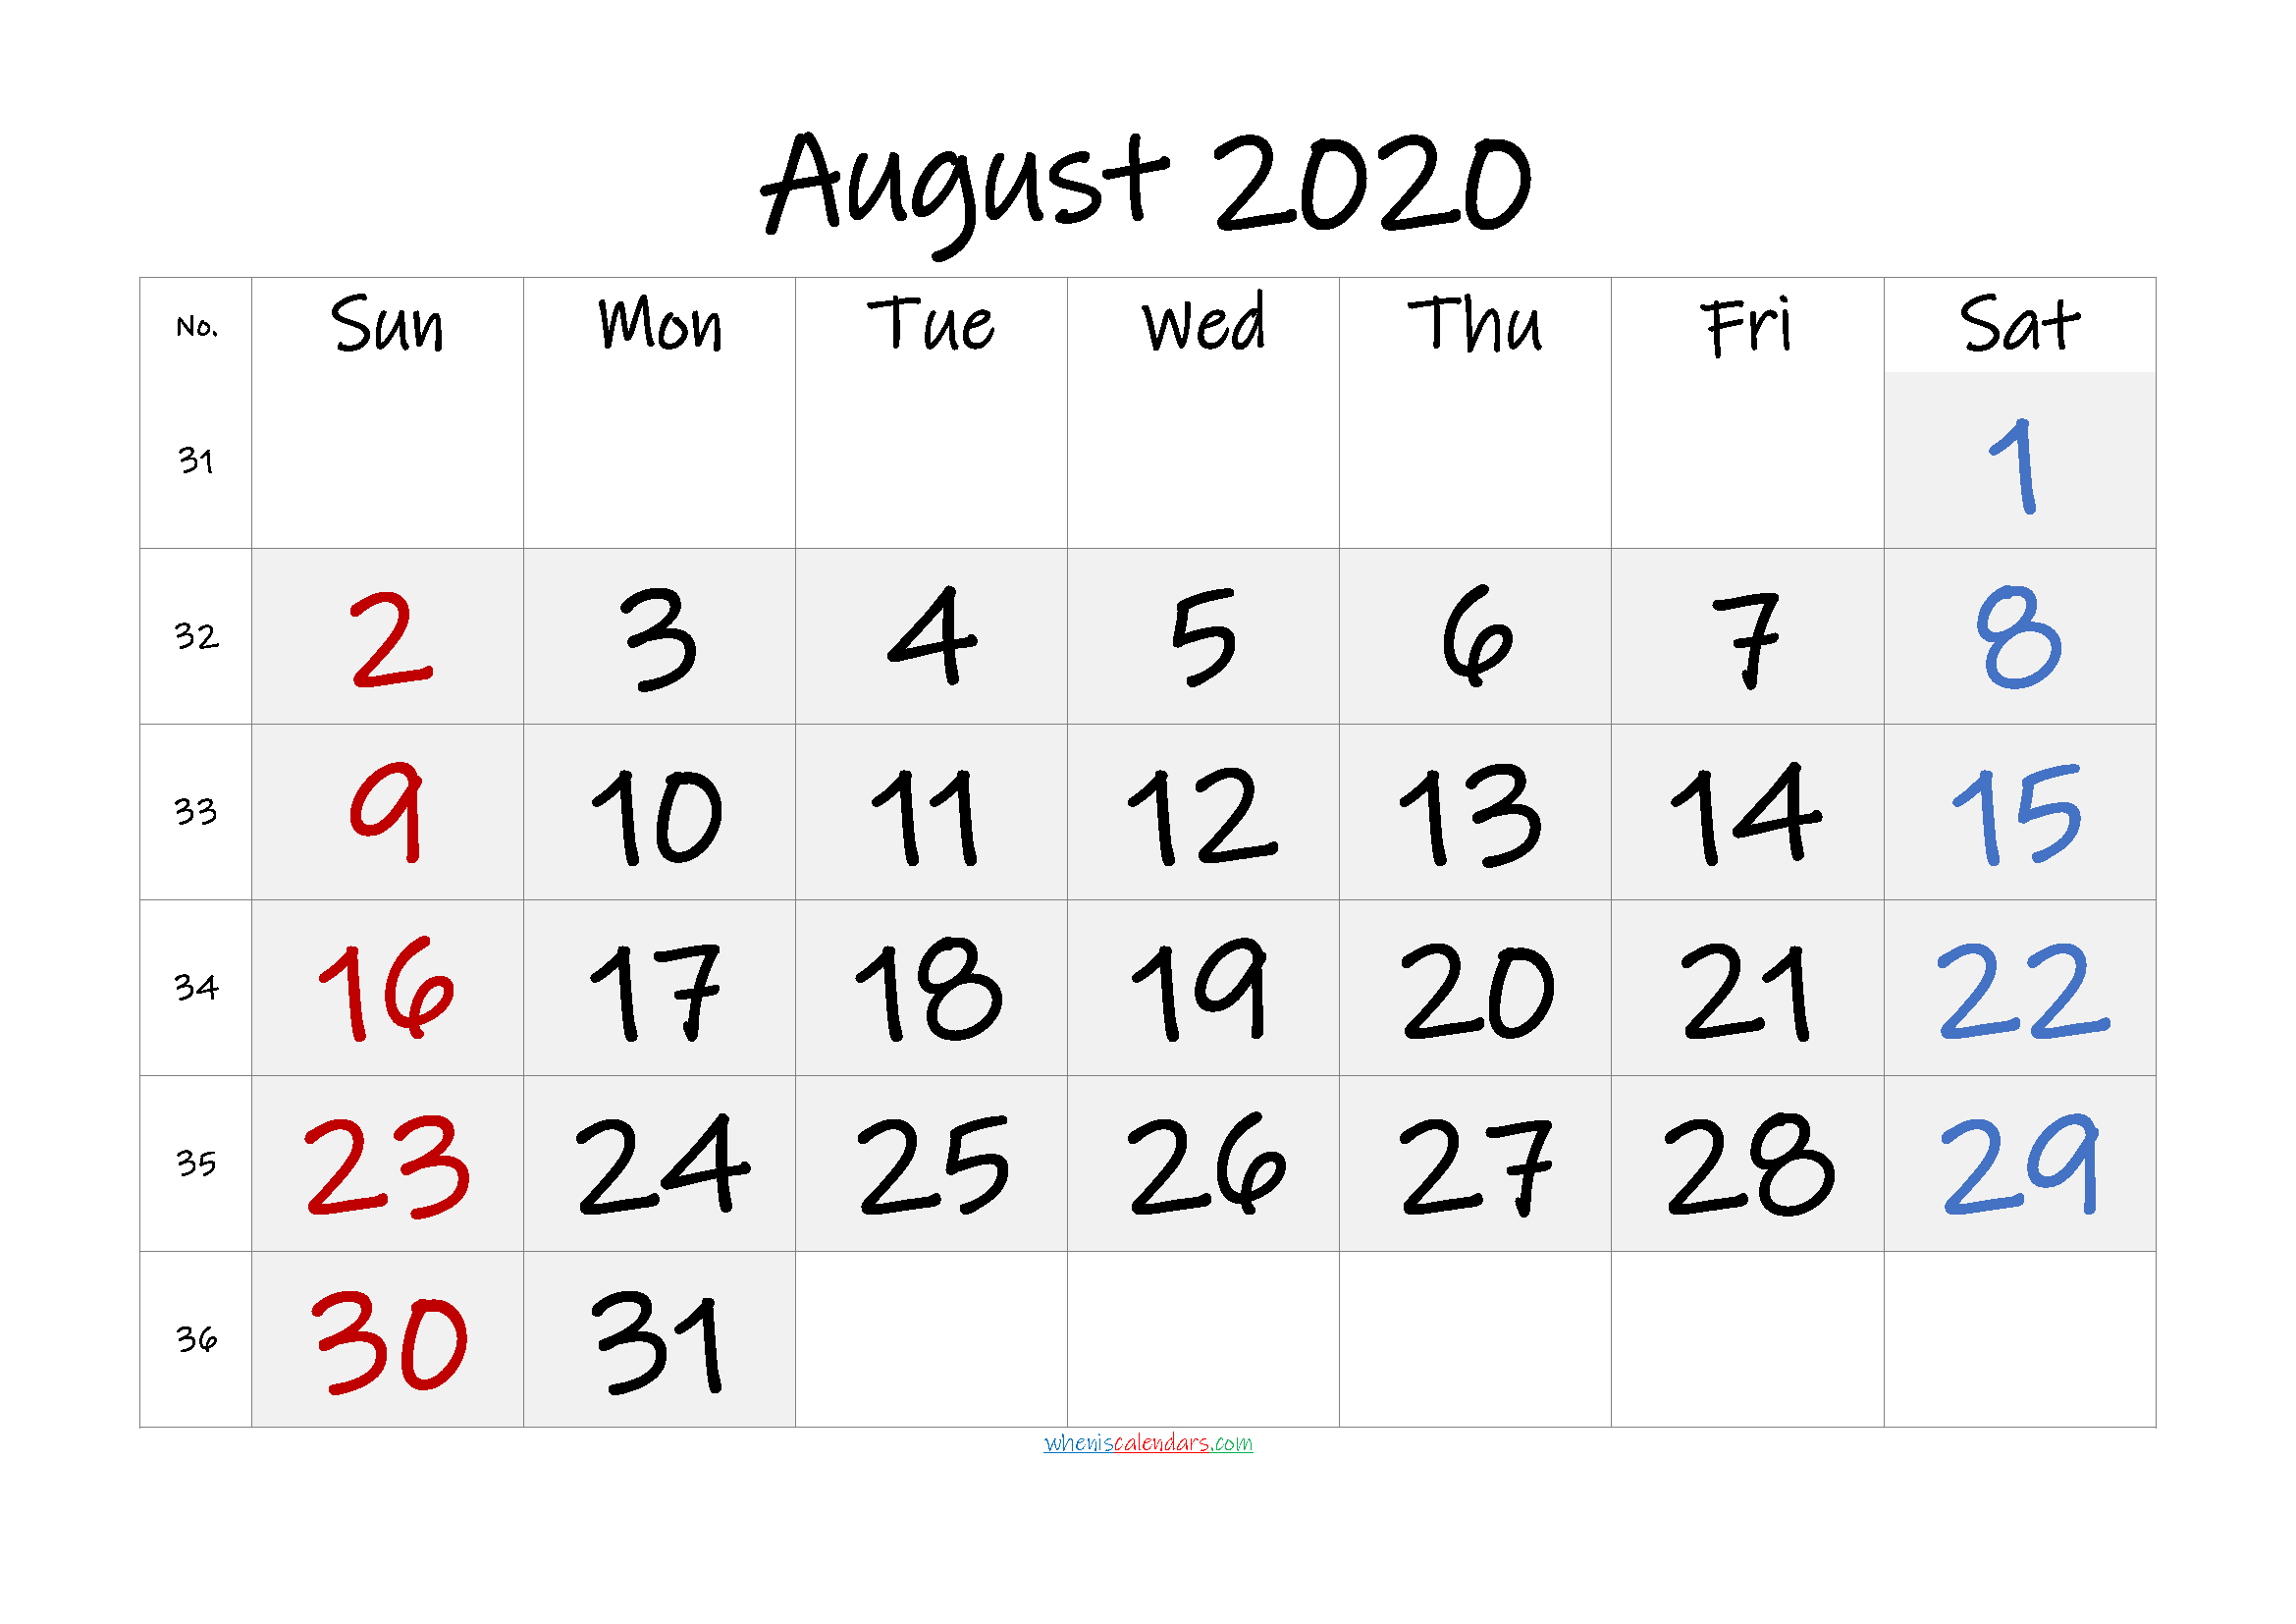 Free Printable AUGUST 2020 Calendar with Holidays